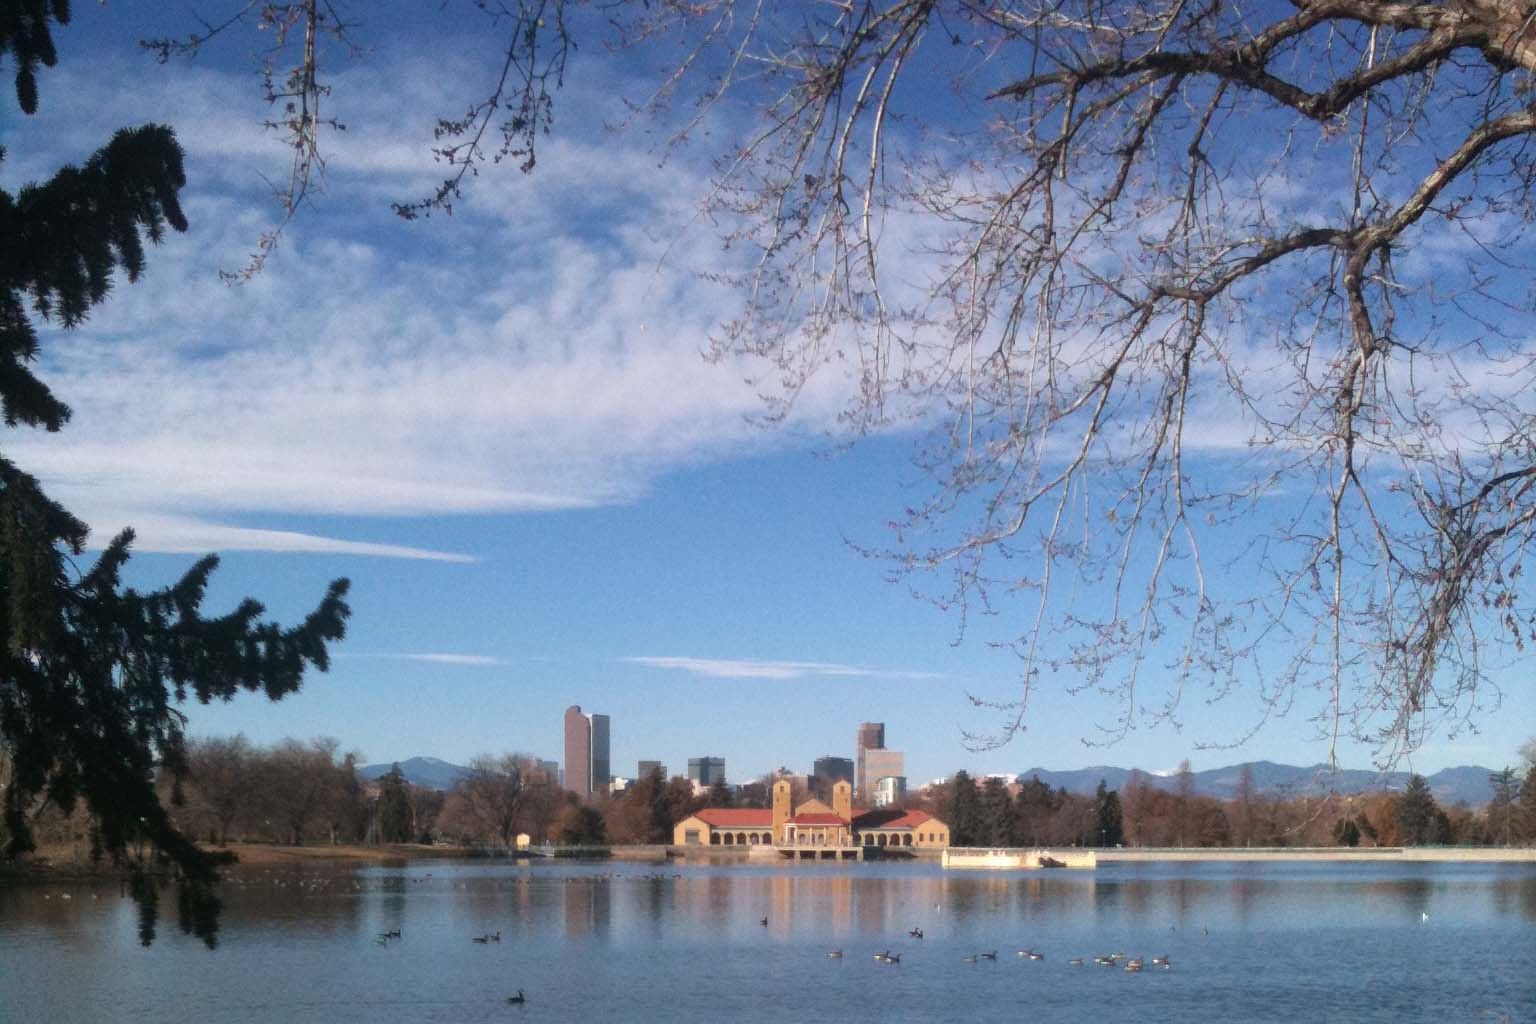 A view of the lake and skyline in Denver's City Park.